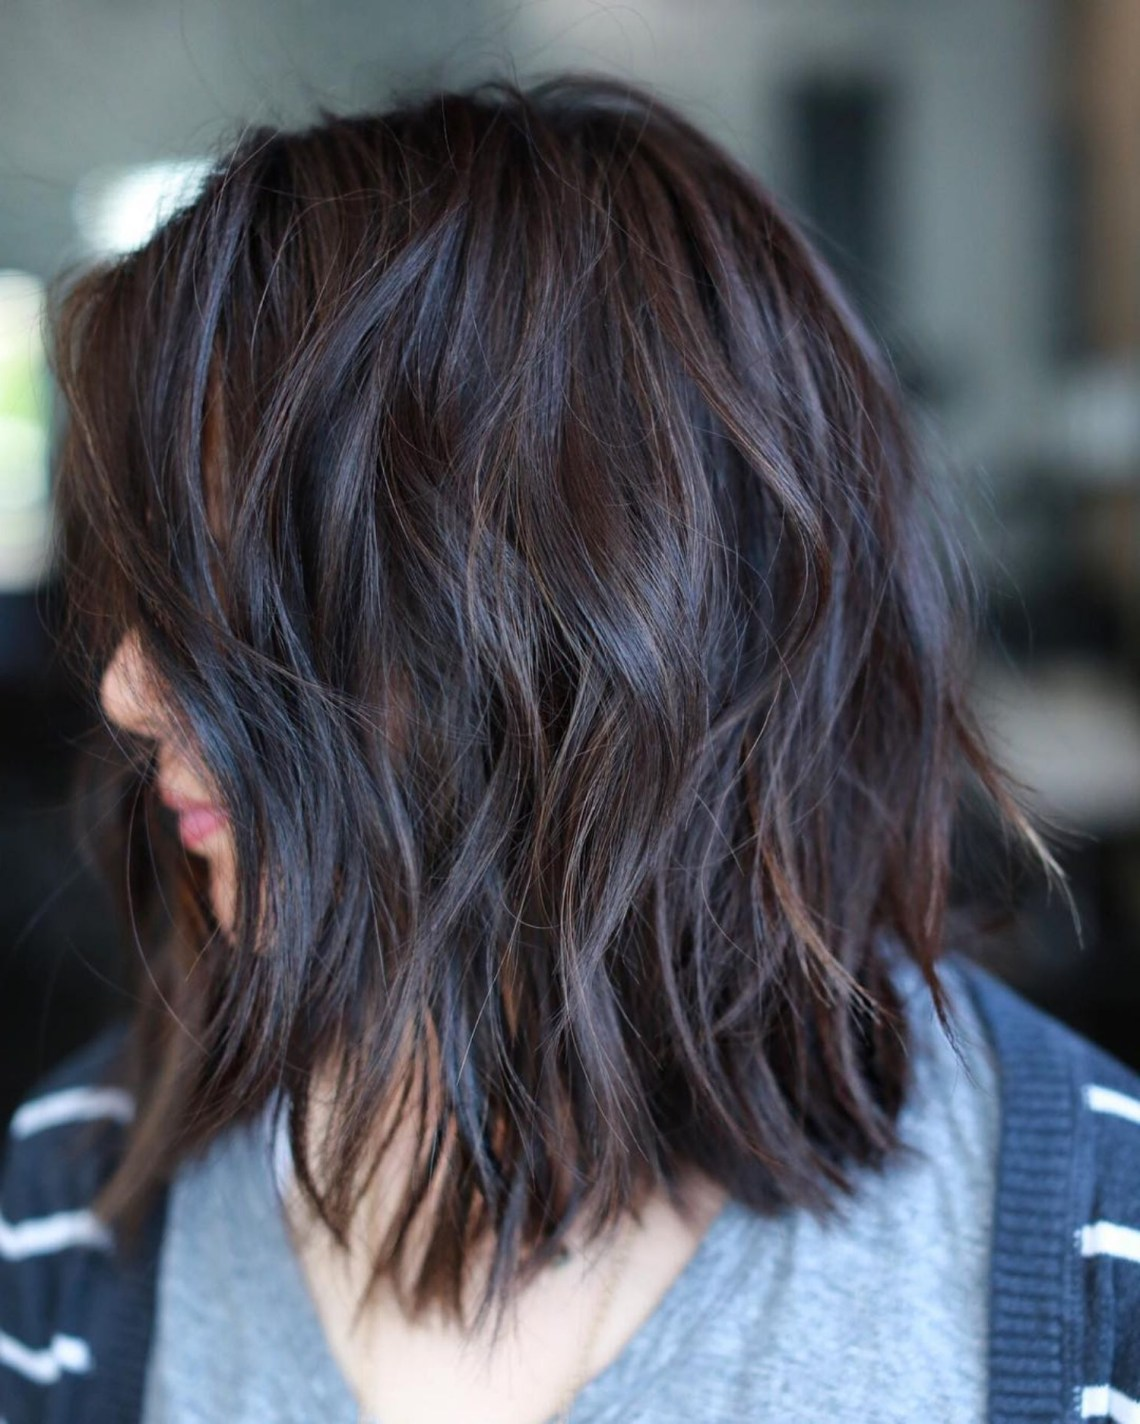 Pin On Hair Things To Do When My Grows Out Medium Length Layered Textured Hairstyles